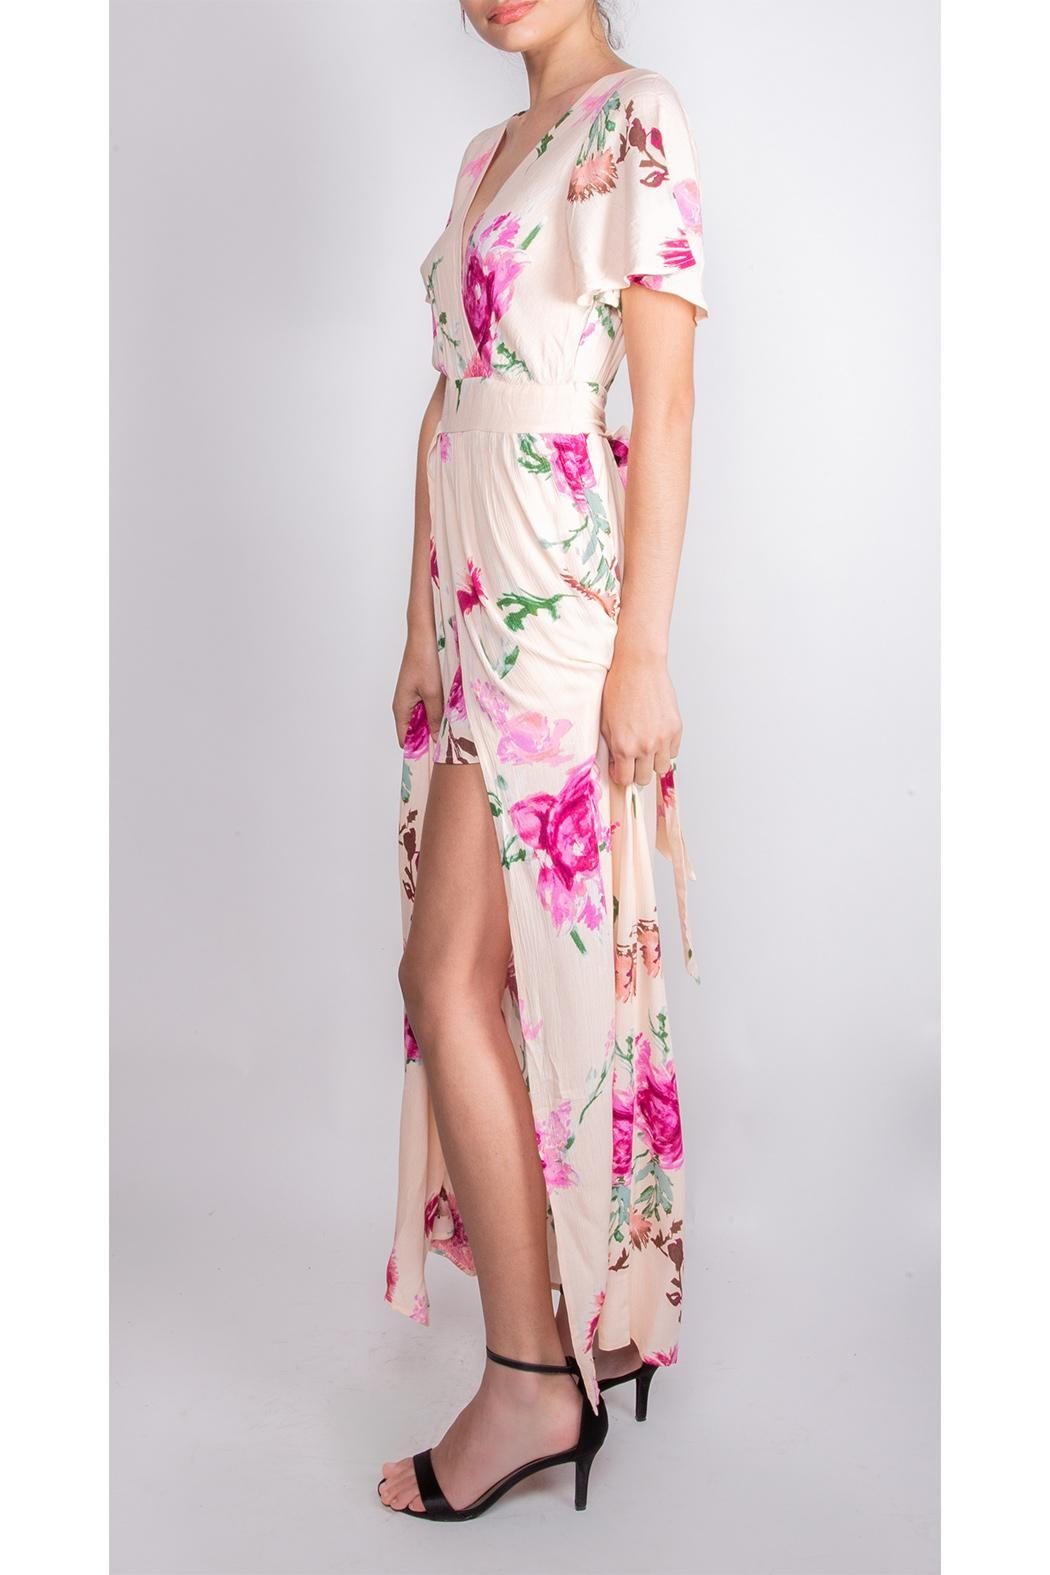 Illa Illa Dream Floral Romper-Dress - Side Cropped Image